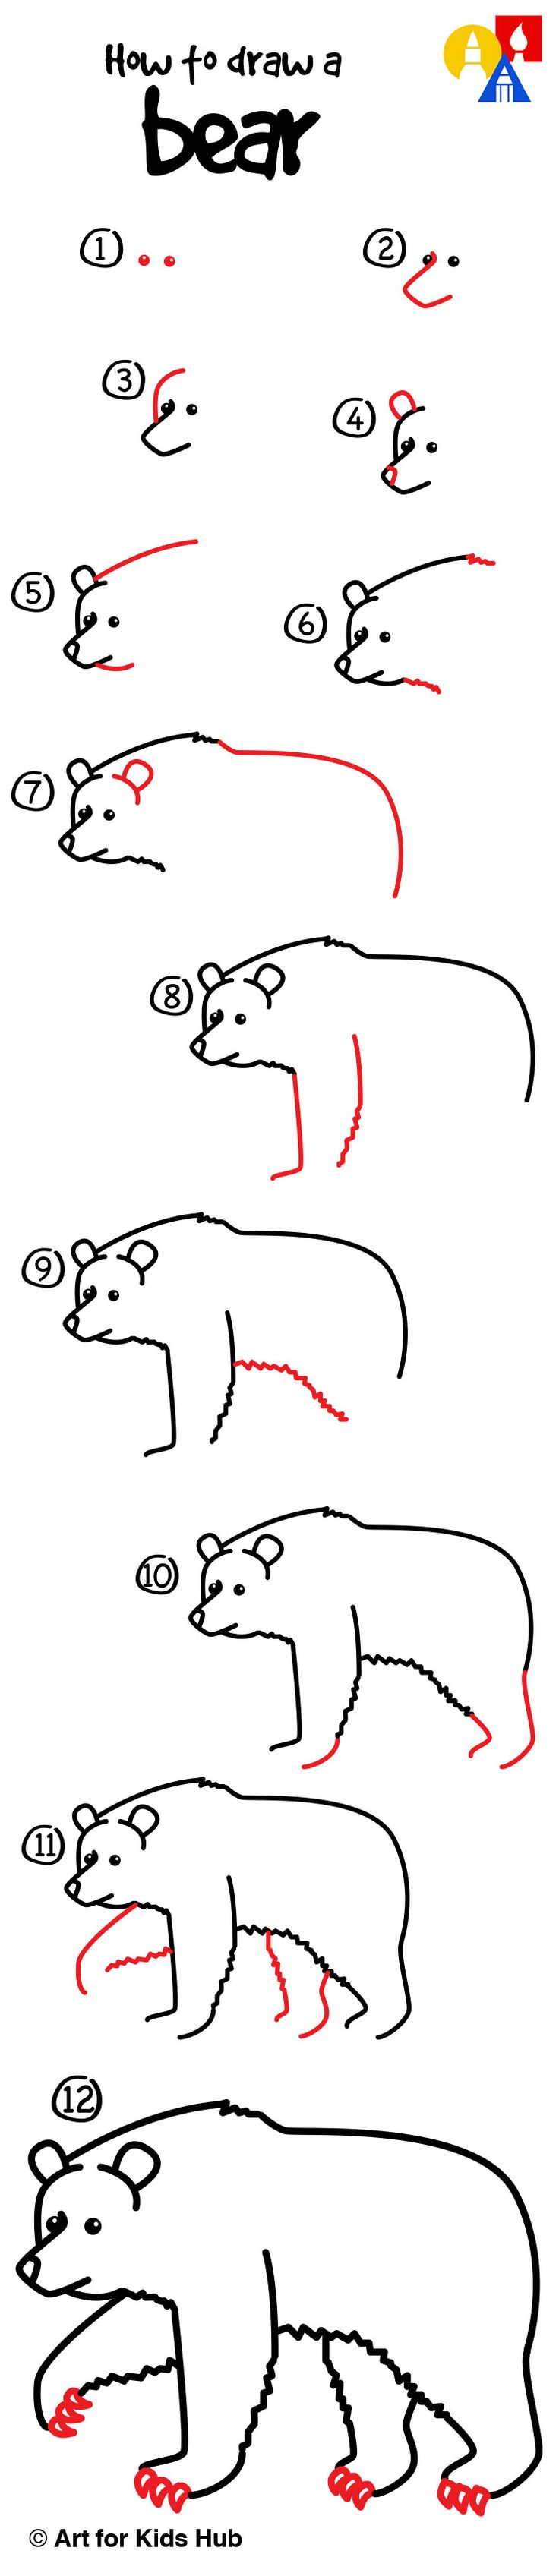 How To Draw A Grizzly Bear Step By Step | www.imgkid.com ...